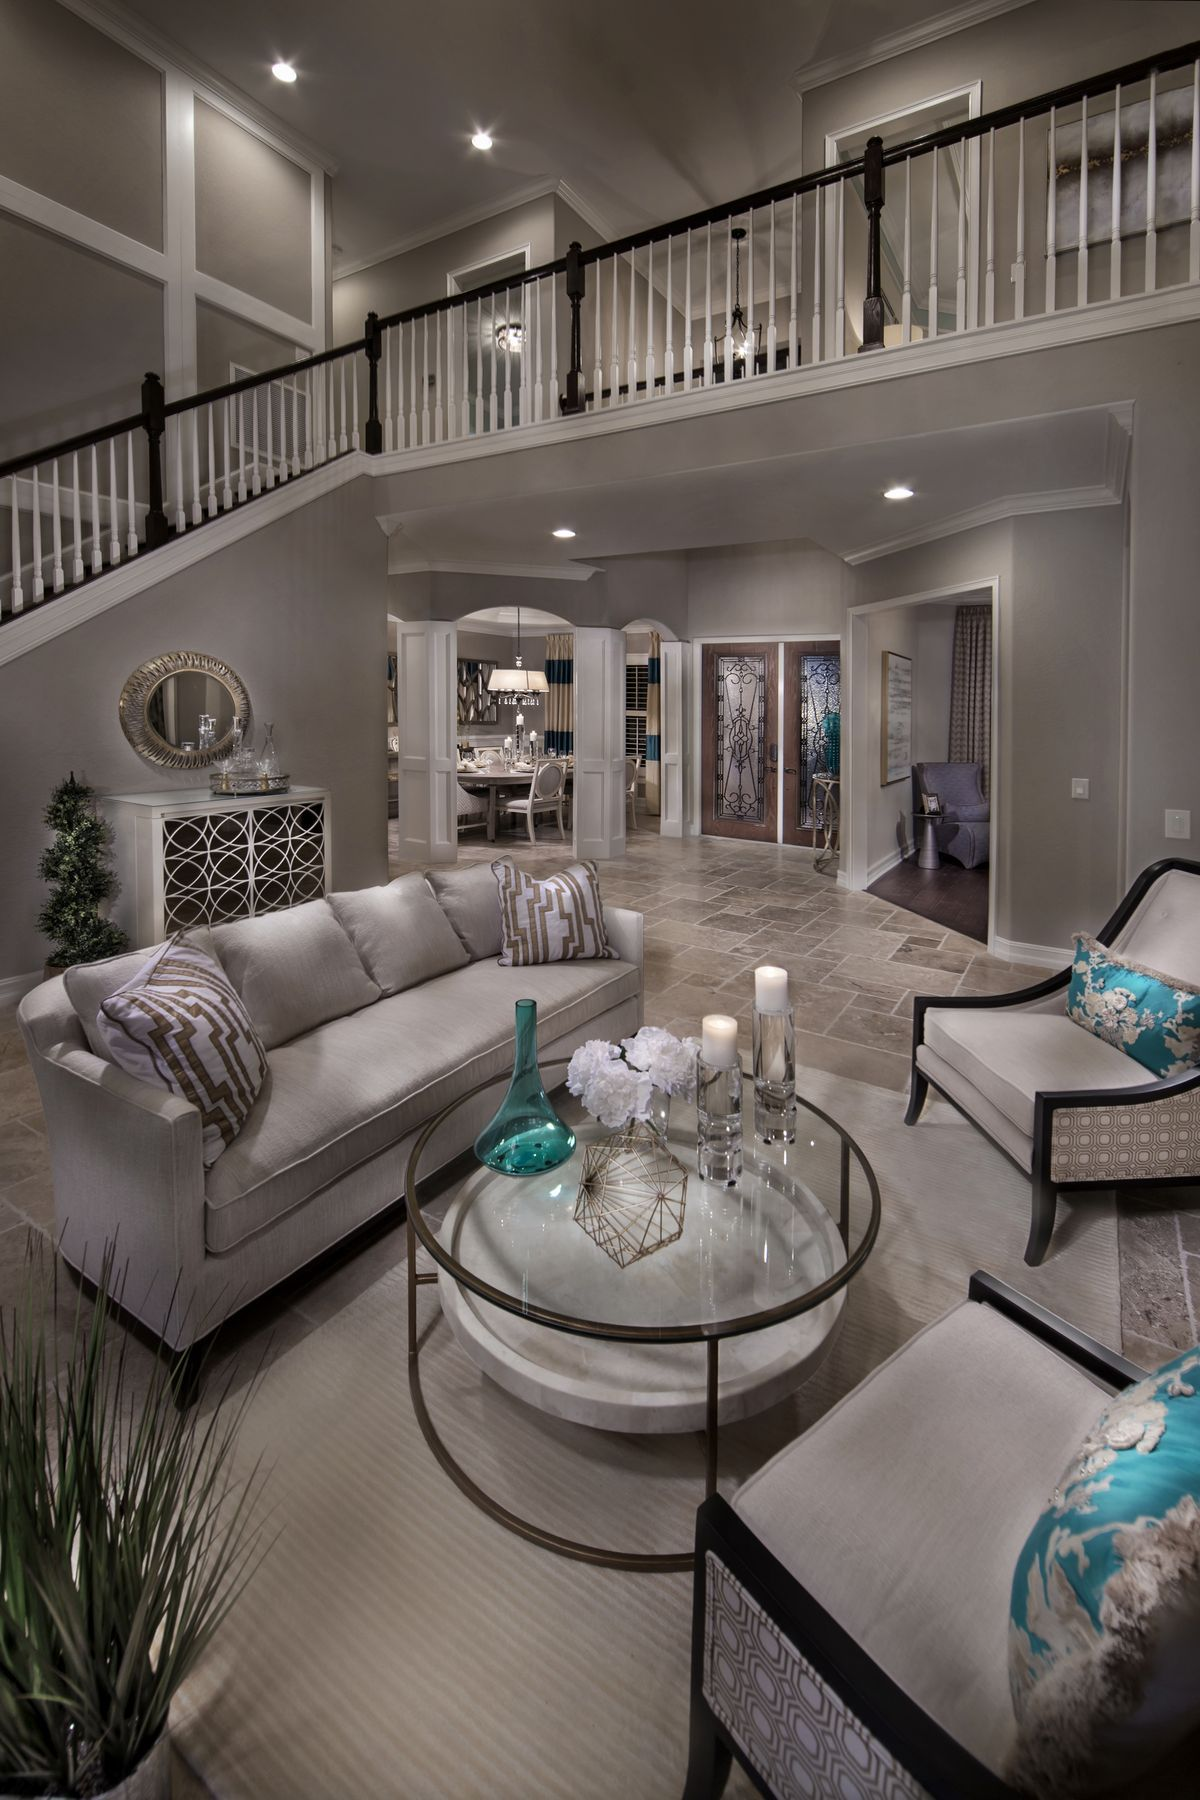 Florida Luxury Homes Products 15 Best Decoration Ideas Florida Luxury Waterfront Condo Luxury Home Decor House Design New House Plans